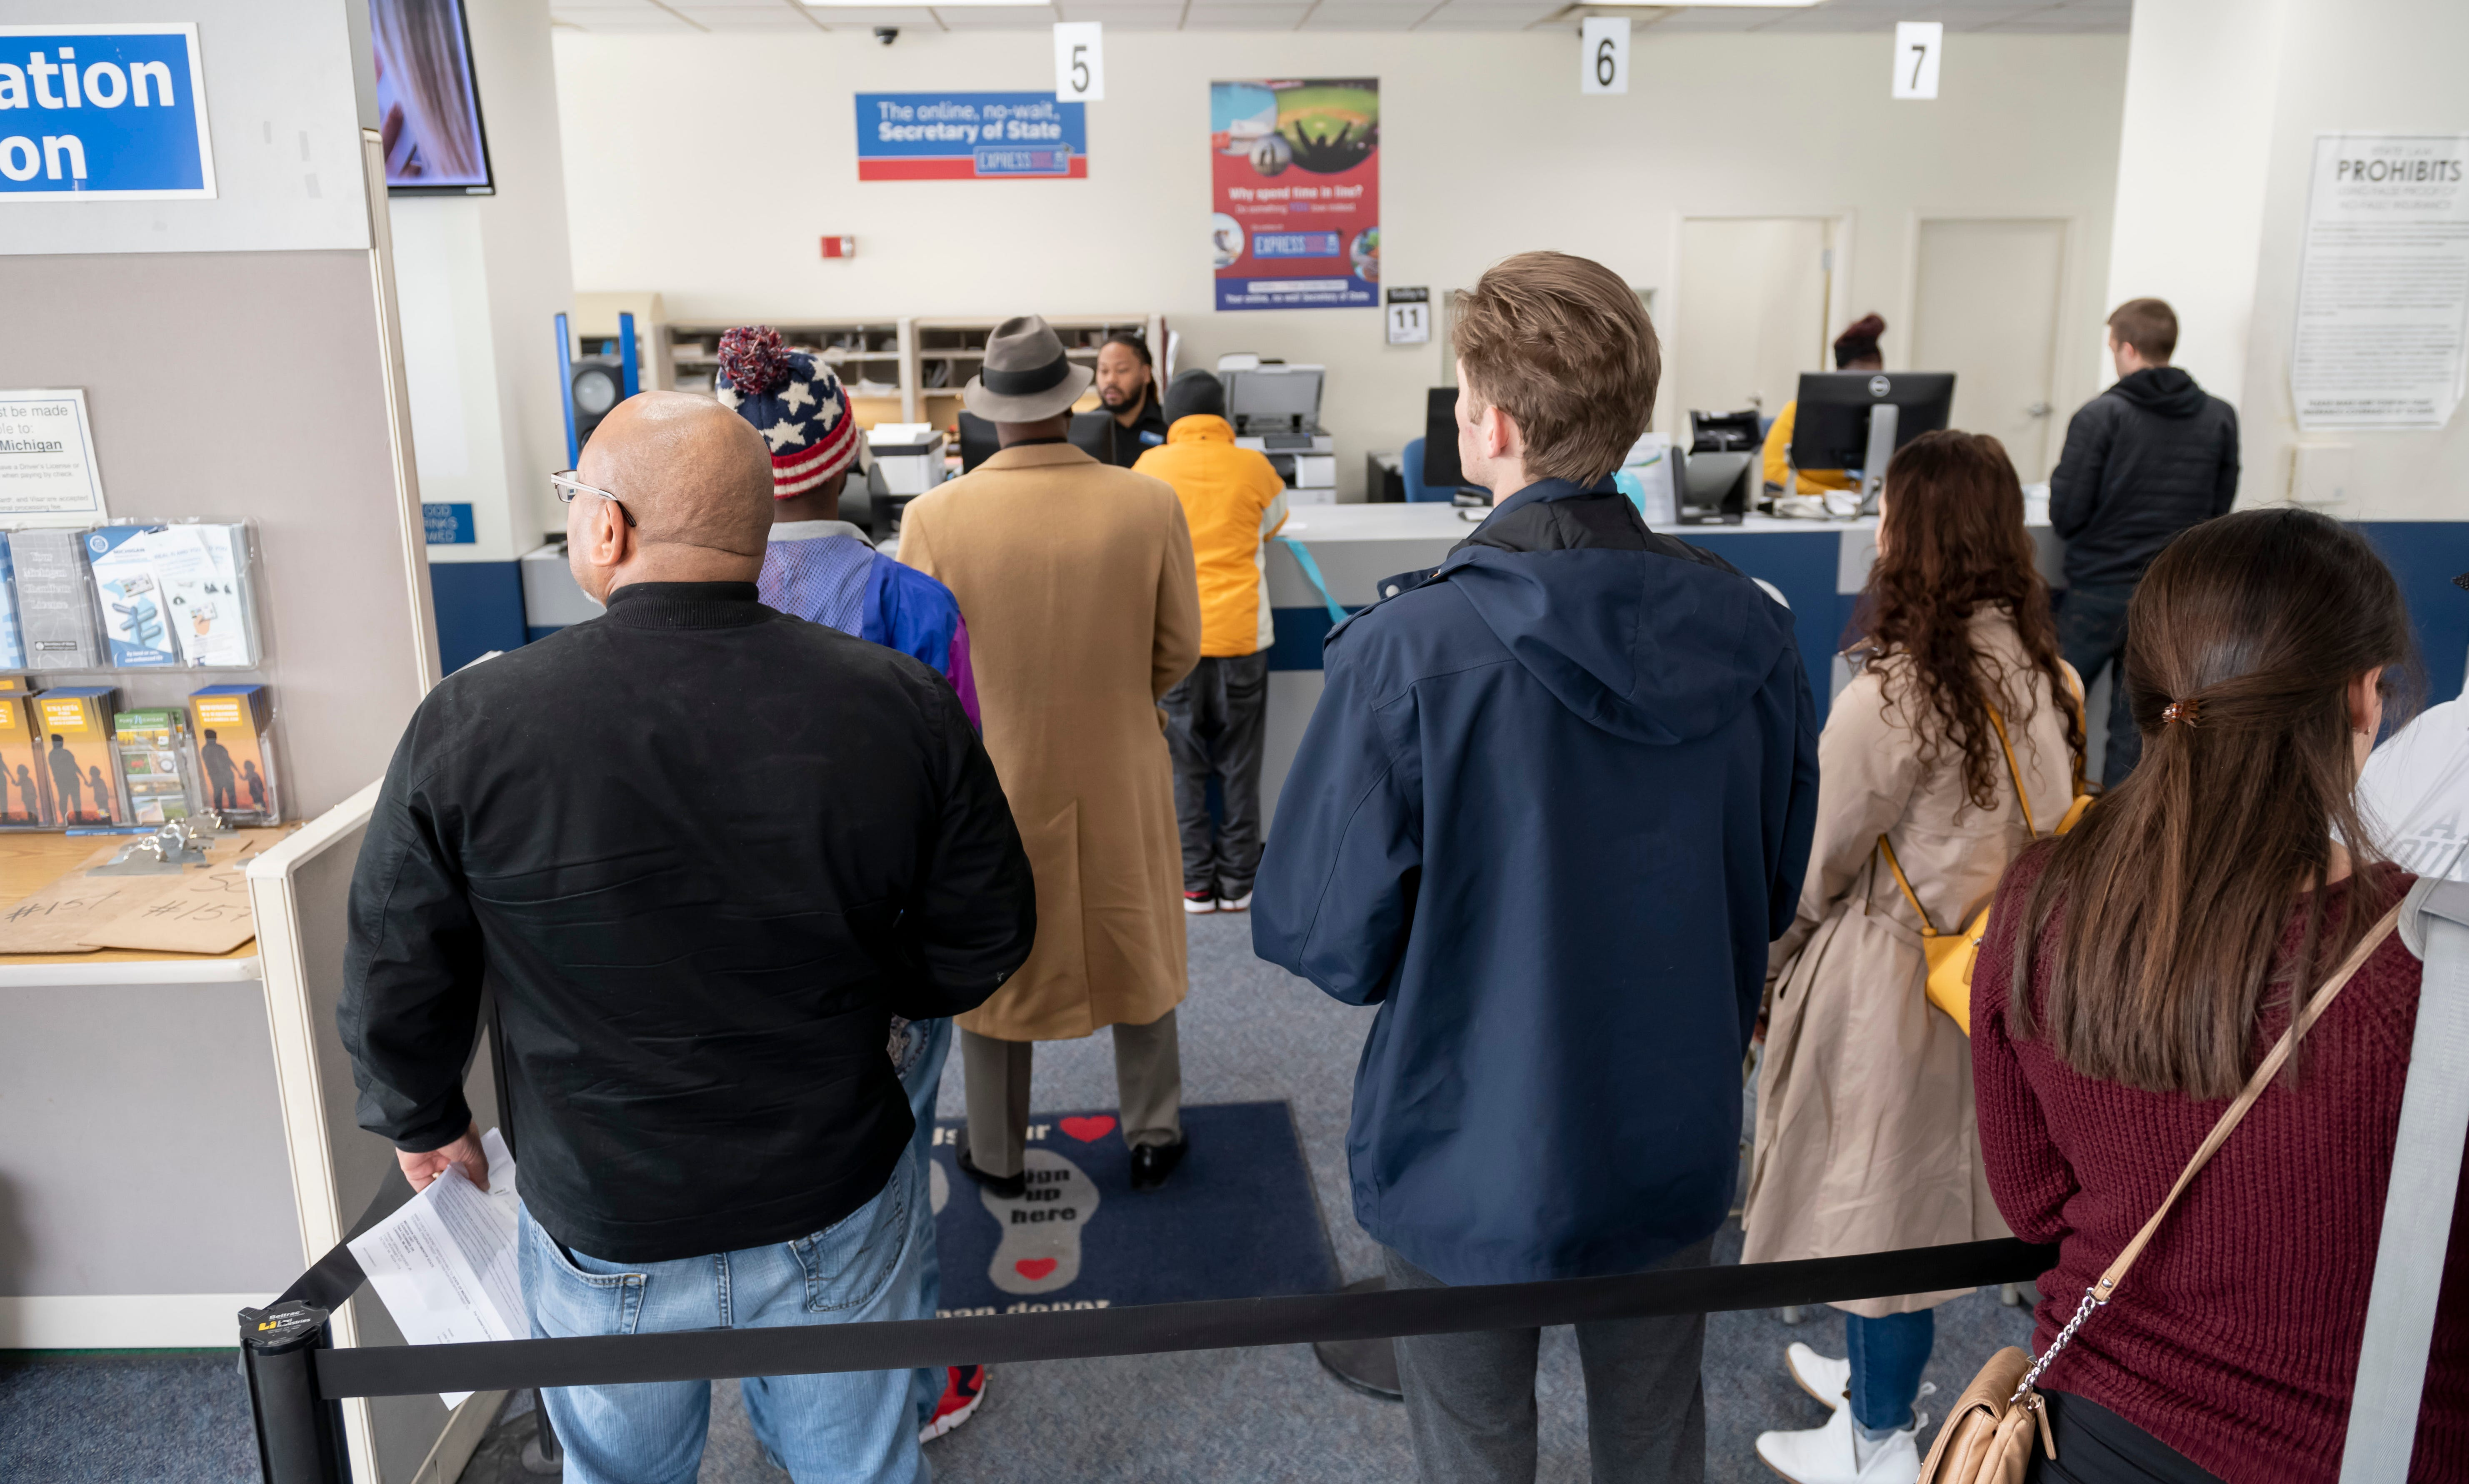 """Customers wait in line at the Secretary of State branch office at Cadillac Place, in Detroit, Thursday. April 11, 2019. """"Our current system is inconsistent, outdated and inefficient,"""" summarized Secretary of State Benson."""""""